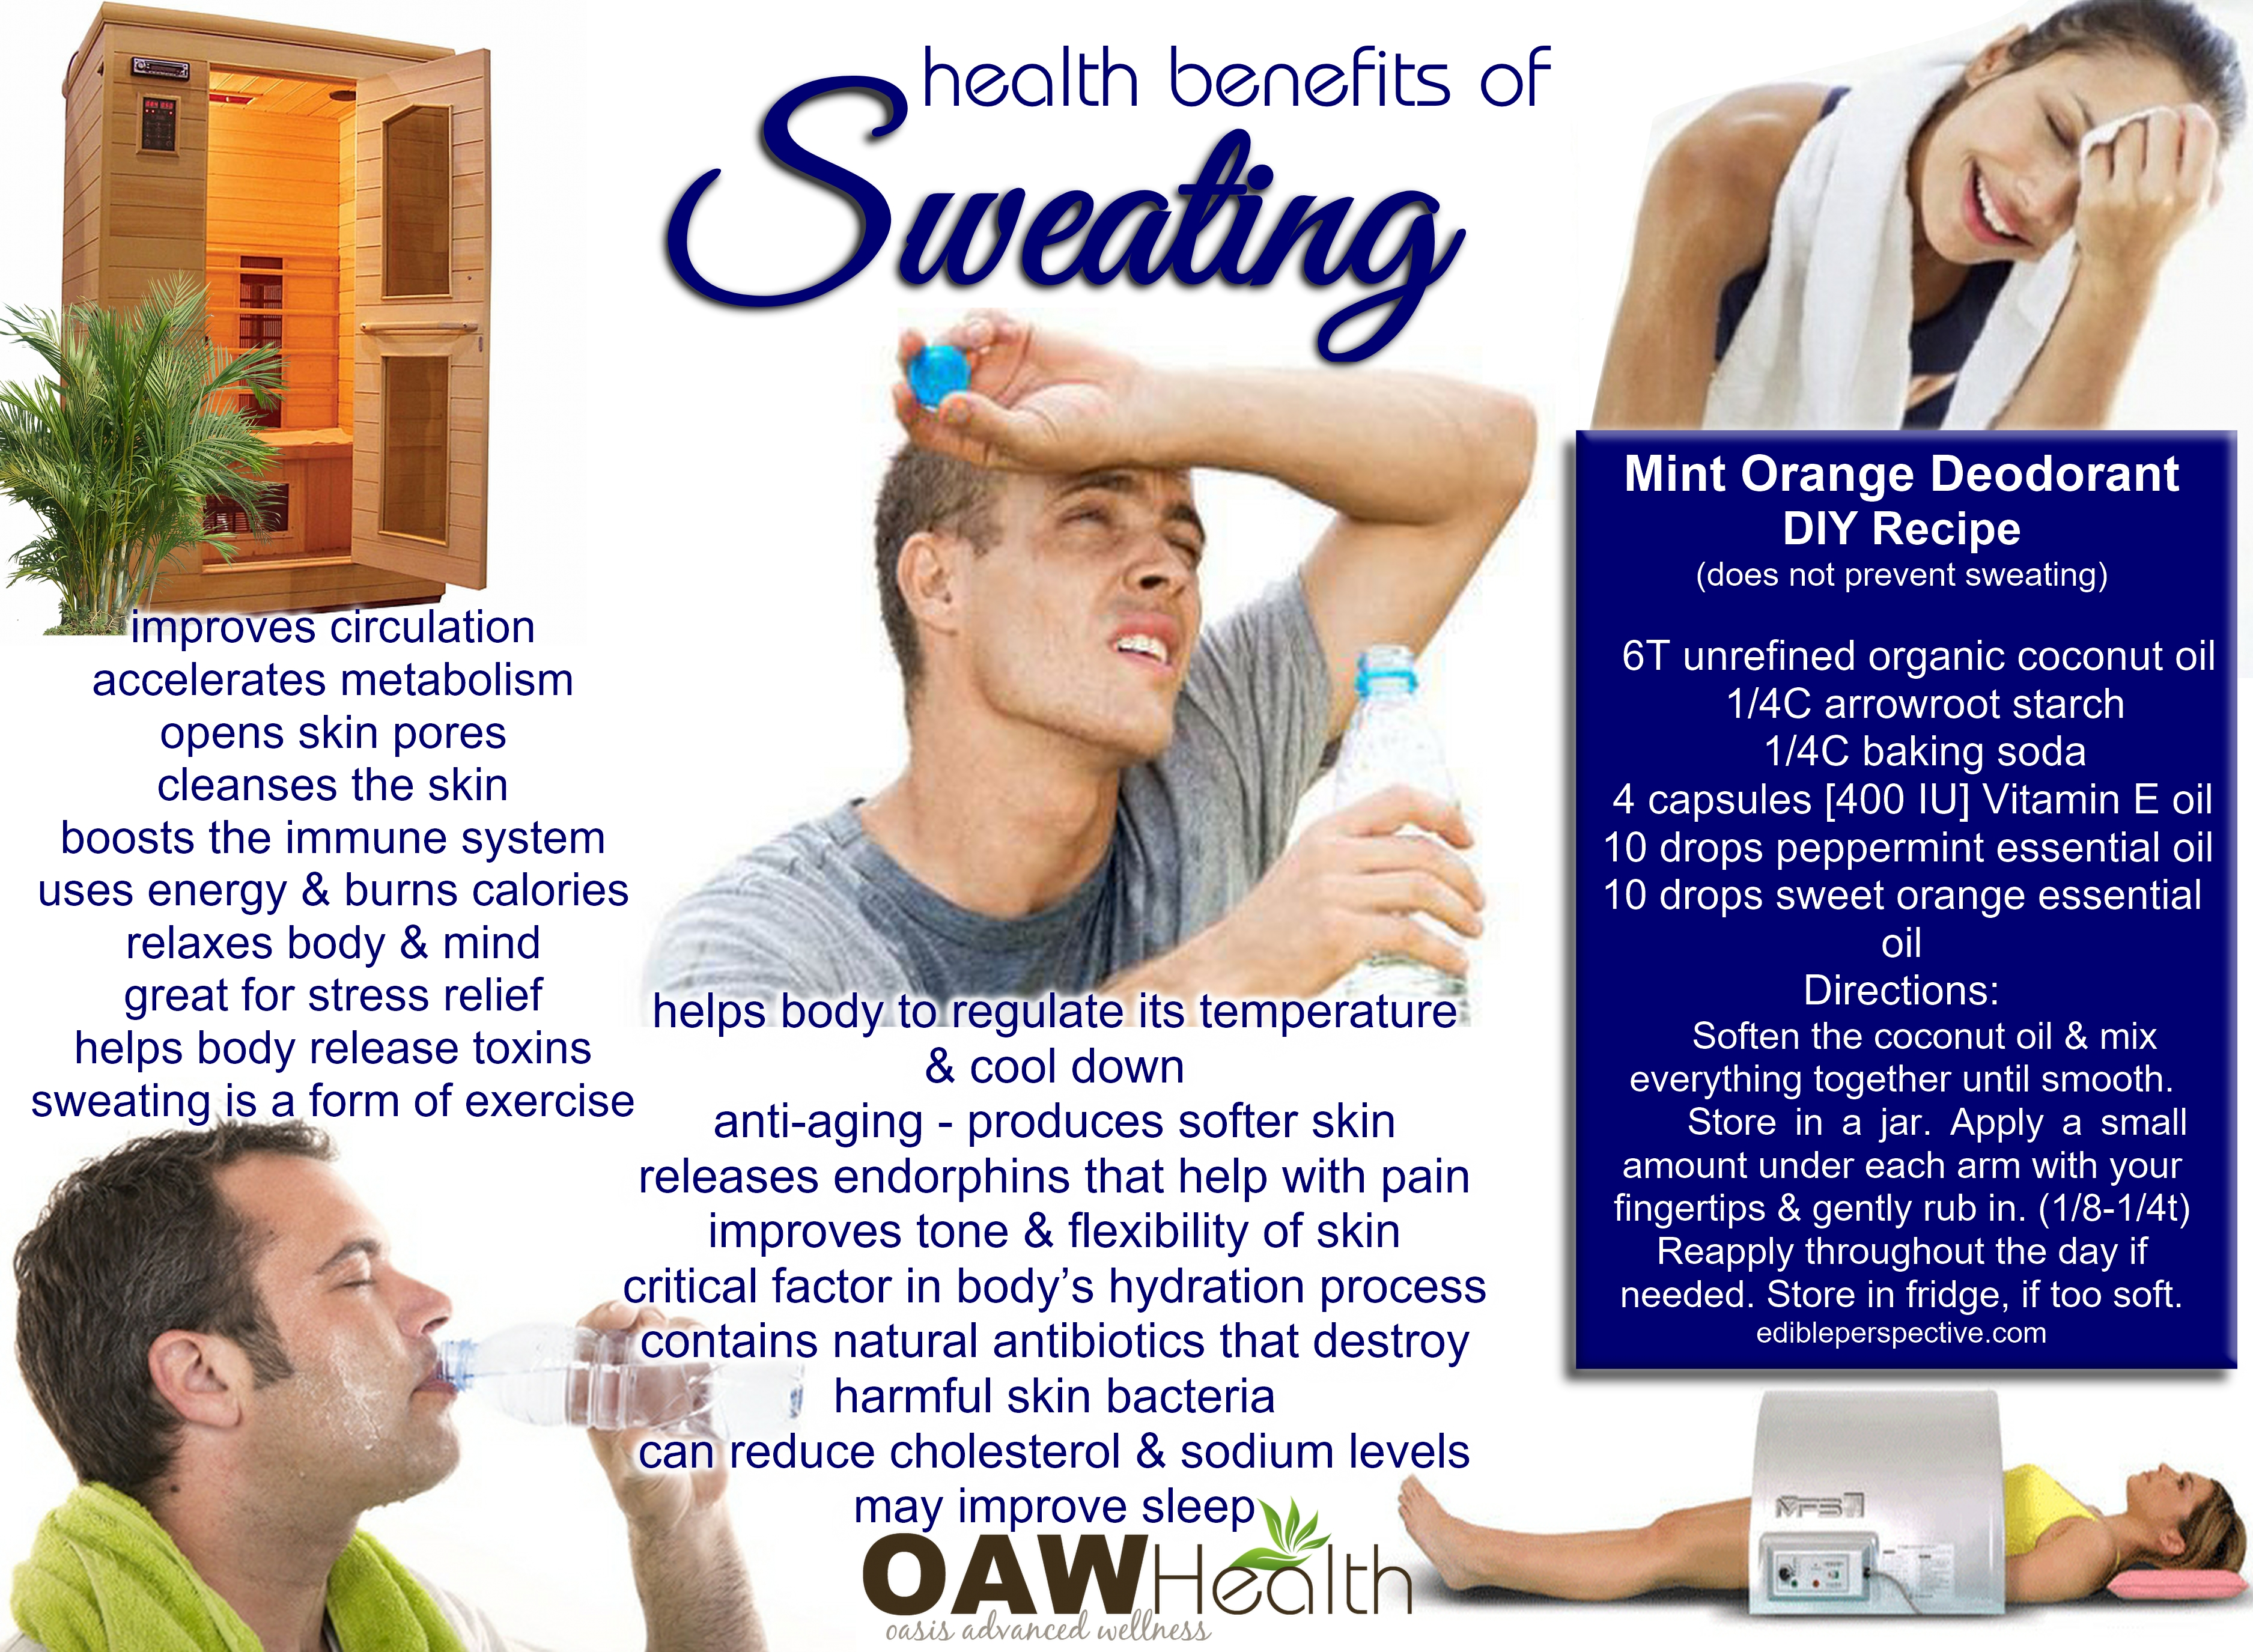 health benefits of sweating 1